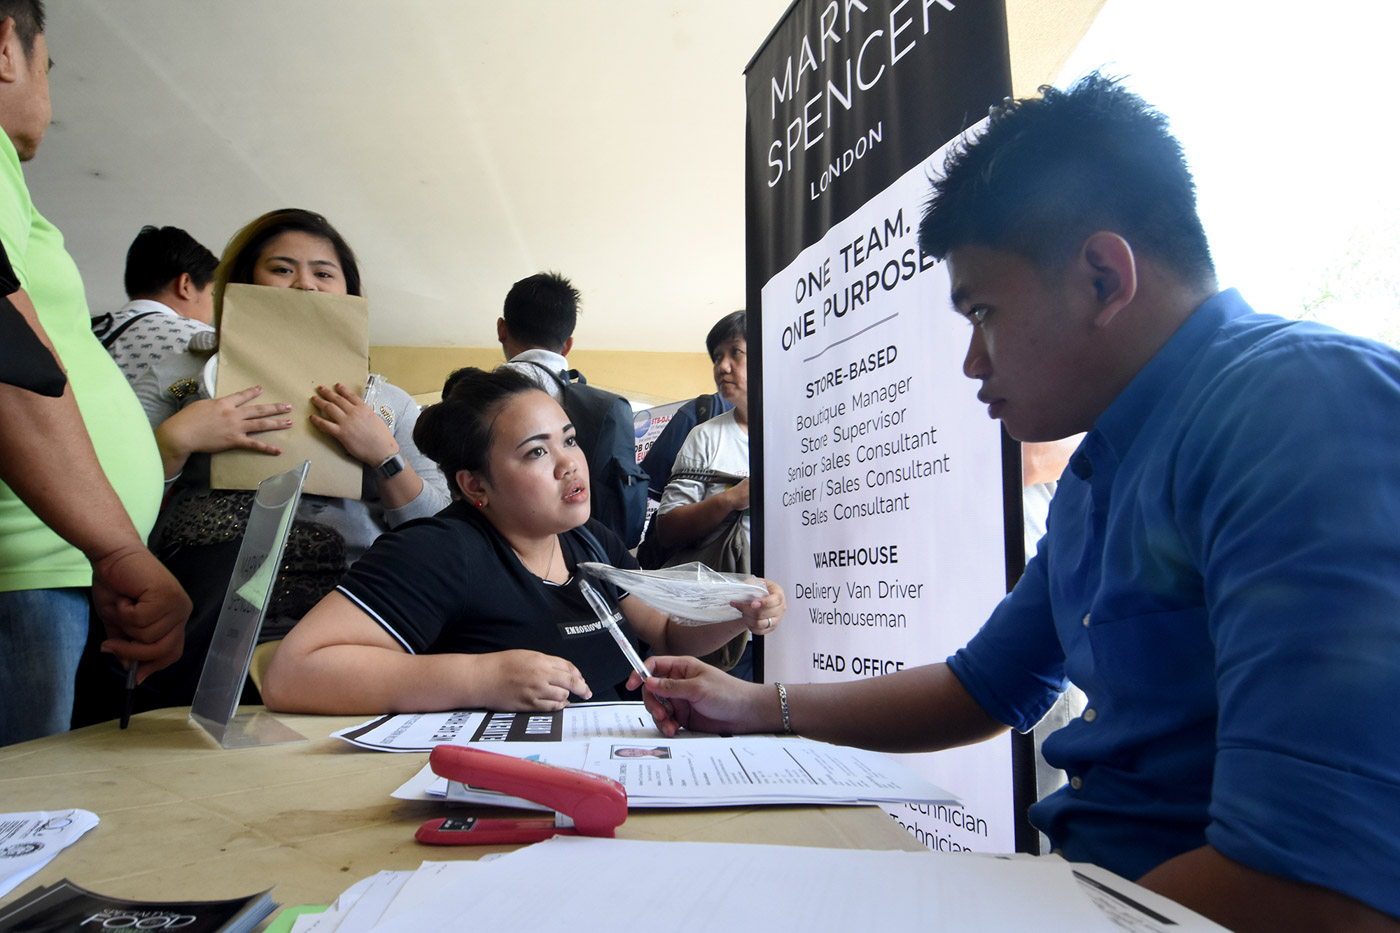 Around 26,138 applicants were interviewed during the job fair in Quezon Cirty Hall. Photo by Angie de Silva/Rappler